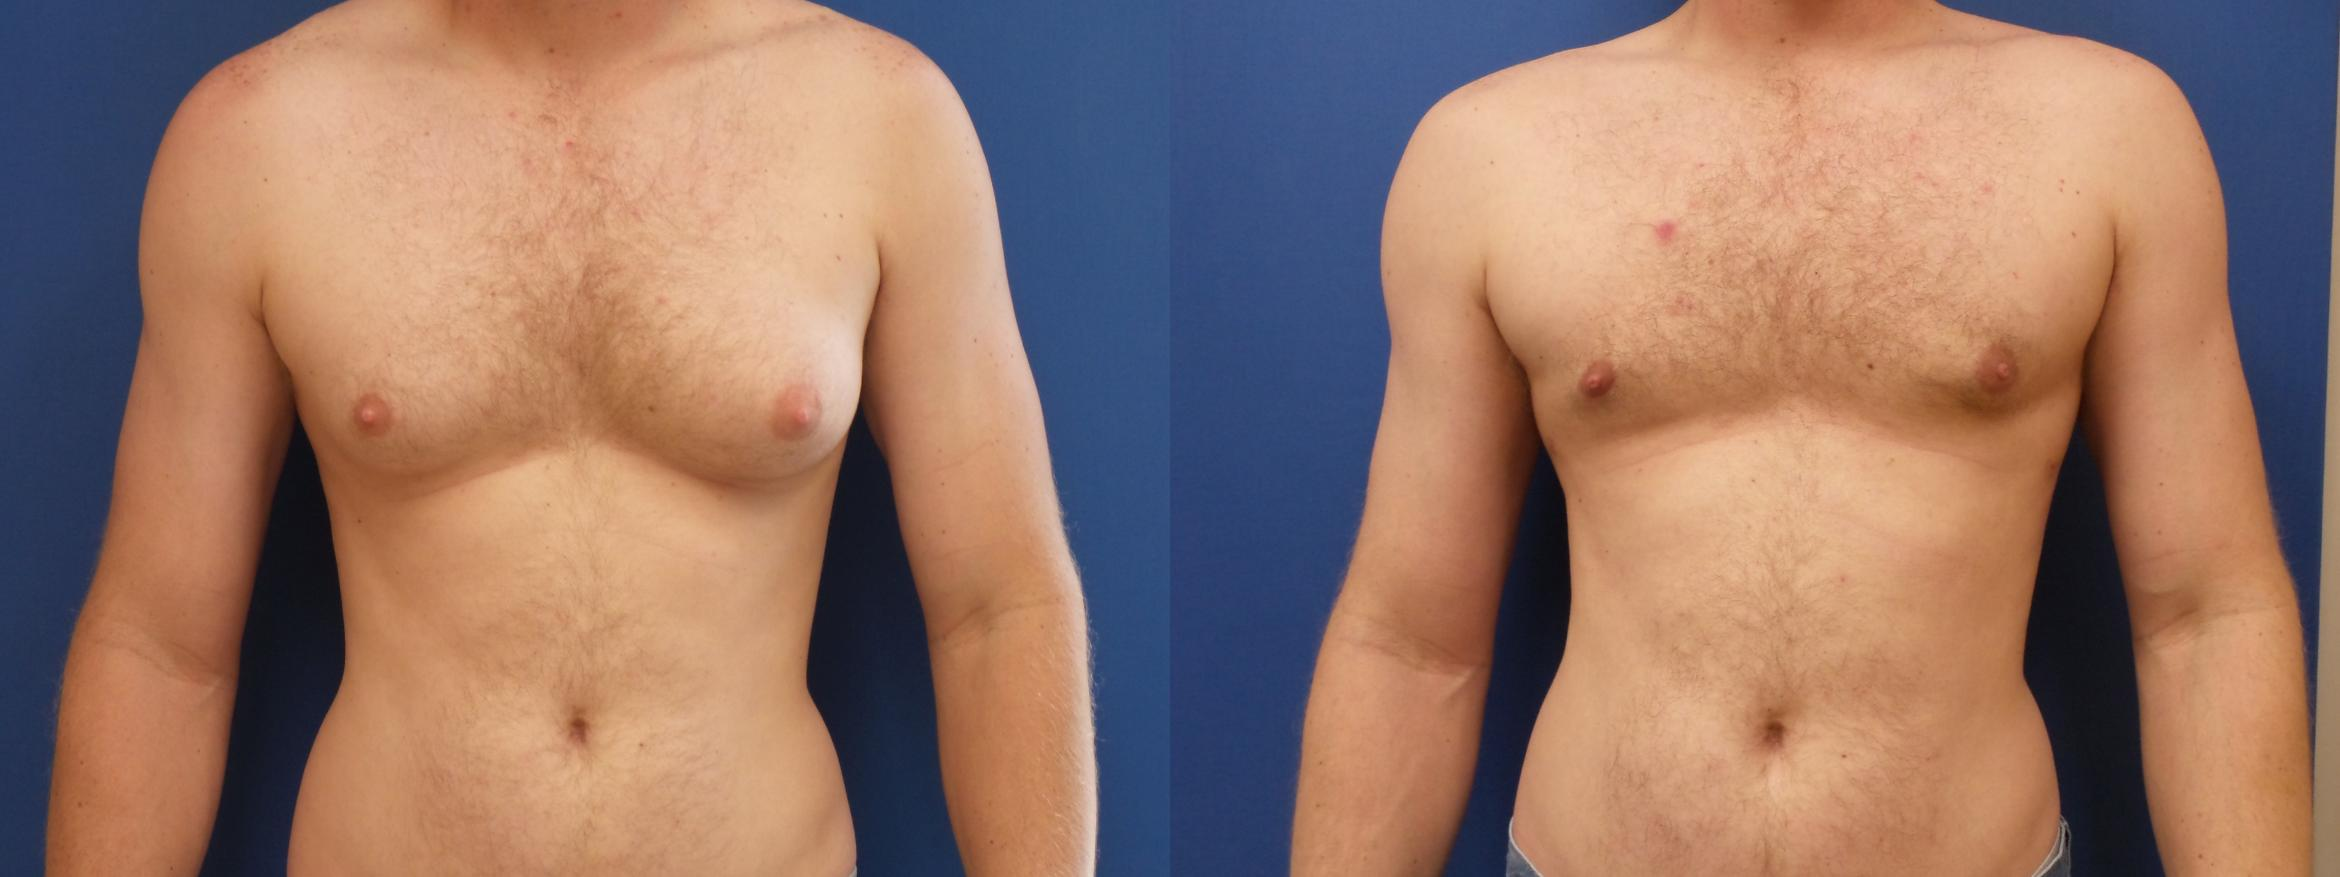 Male Breast Reduction Case 190 Before & After View #1 | Webster, TX | Houston Plastic and Reconstructive Surgery